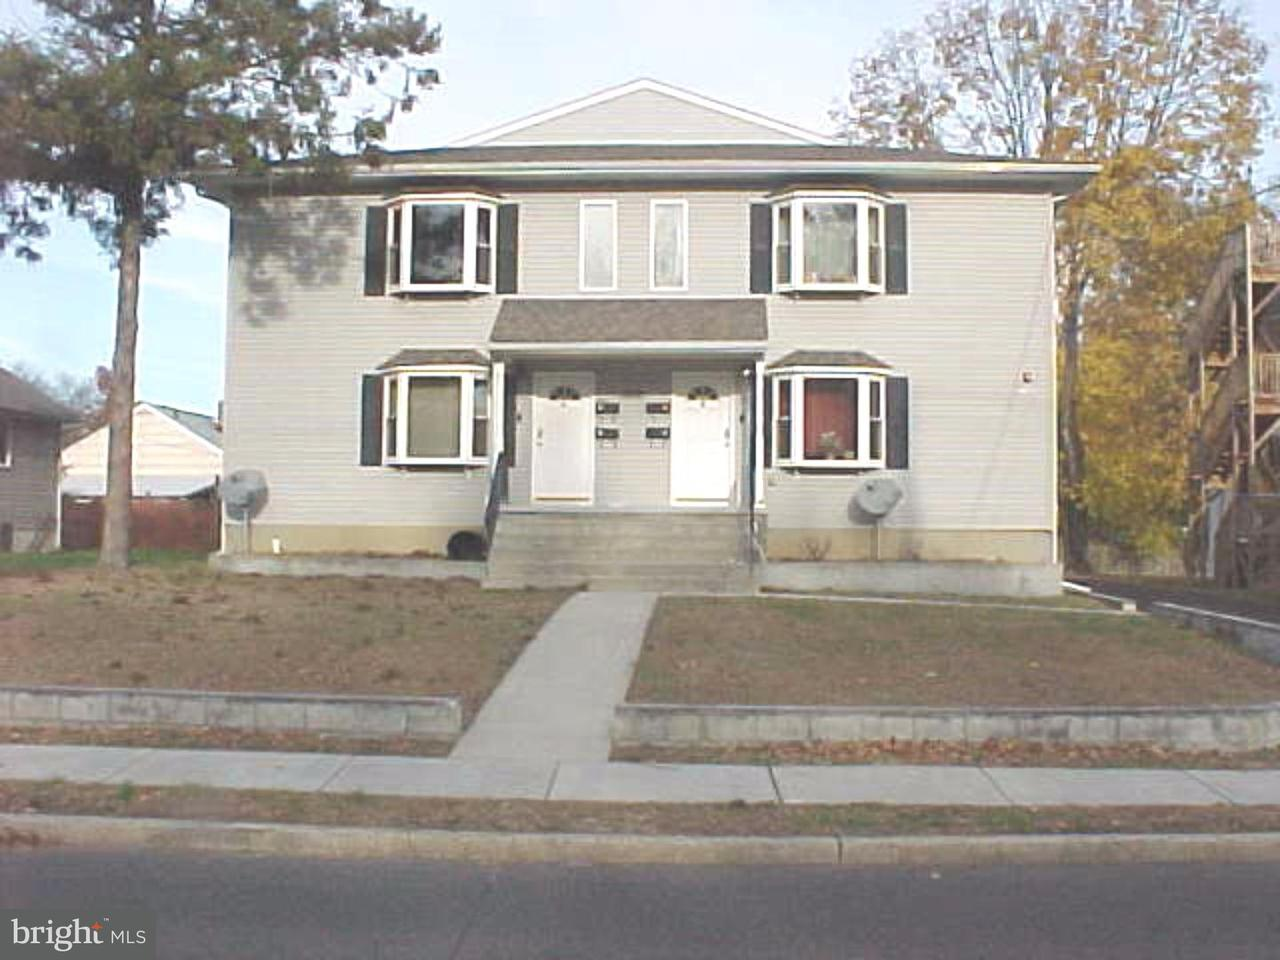 Single Family Home for Rent at 3312 COVE RD #C Pennsauken, New Jersey 08109 United States